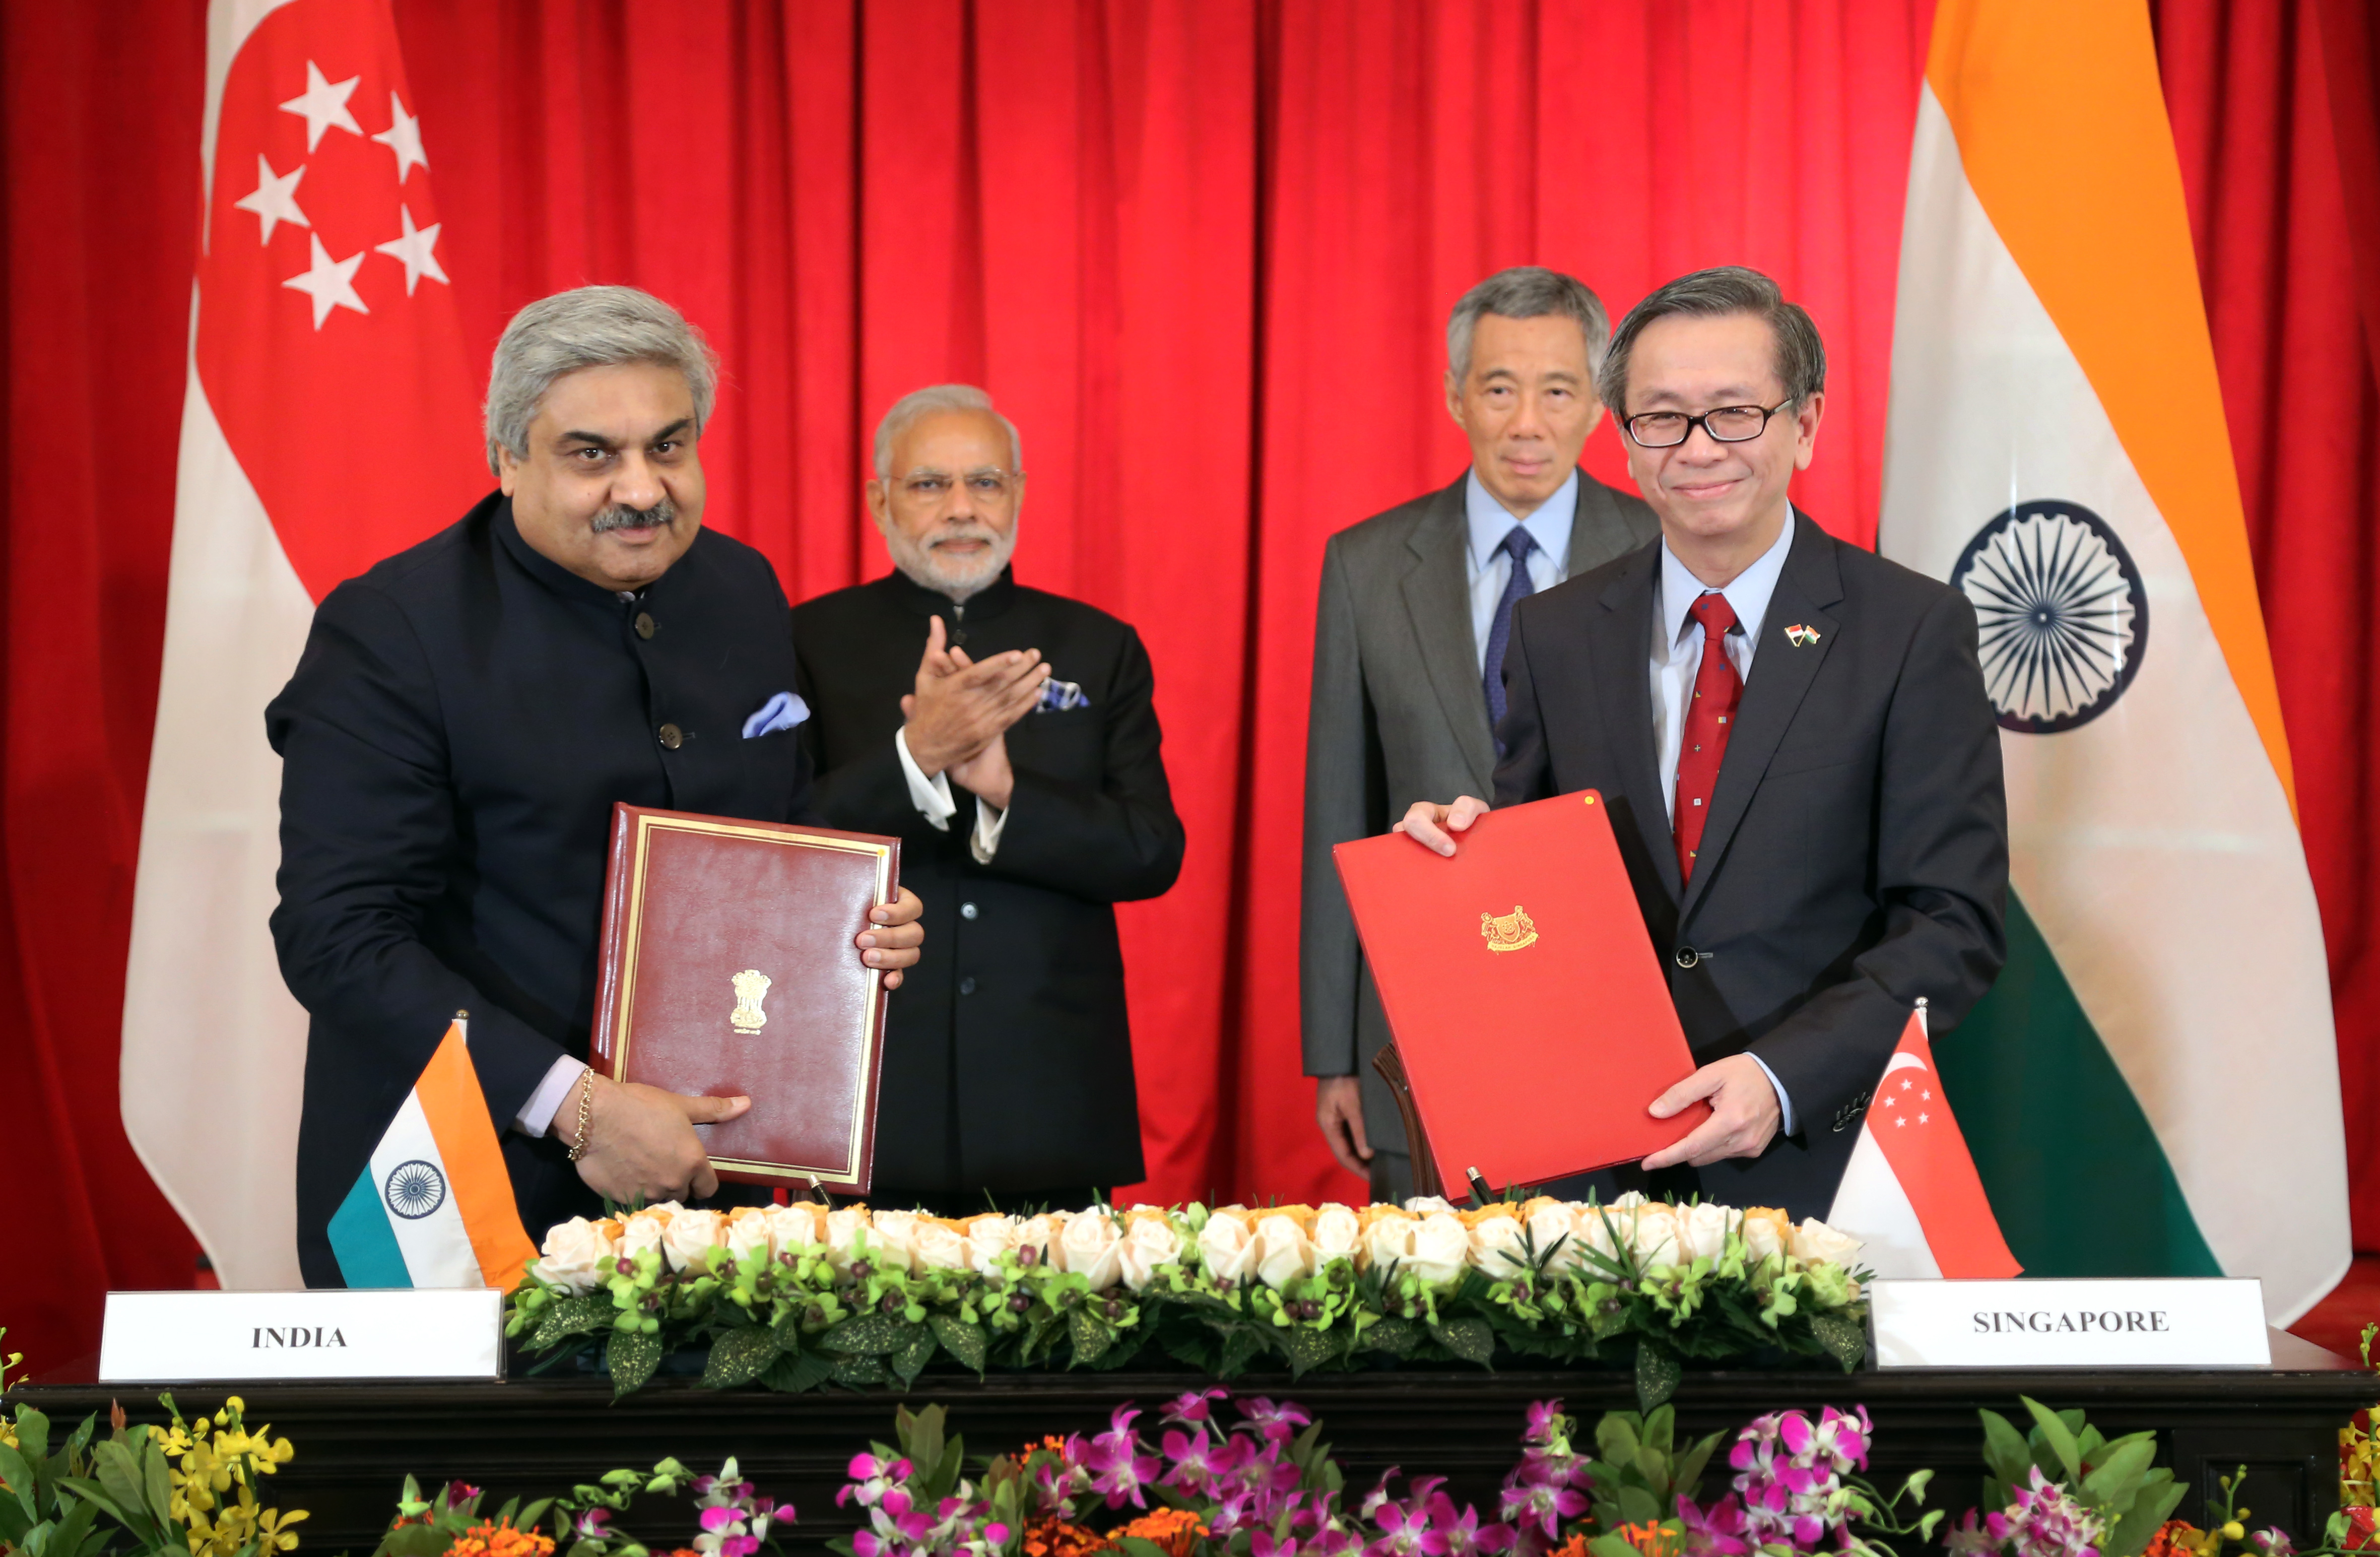 CSA signs MOU with India